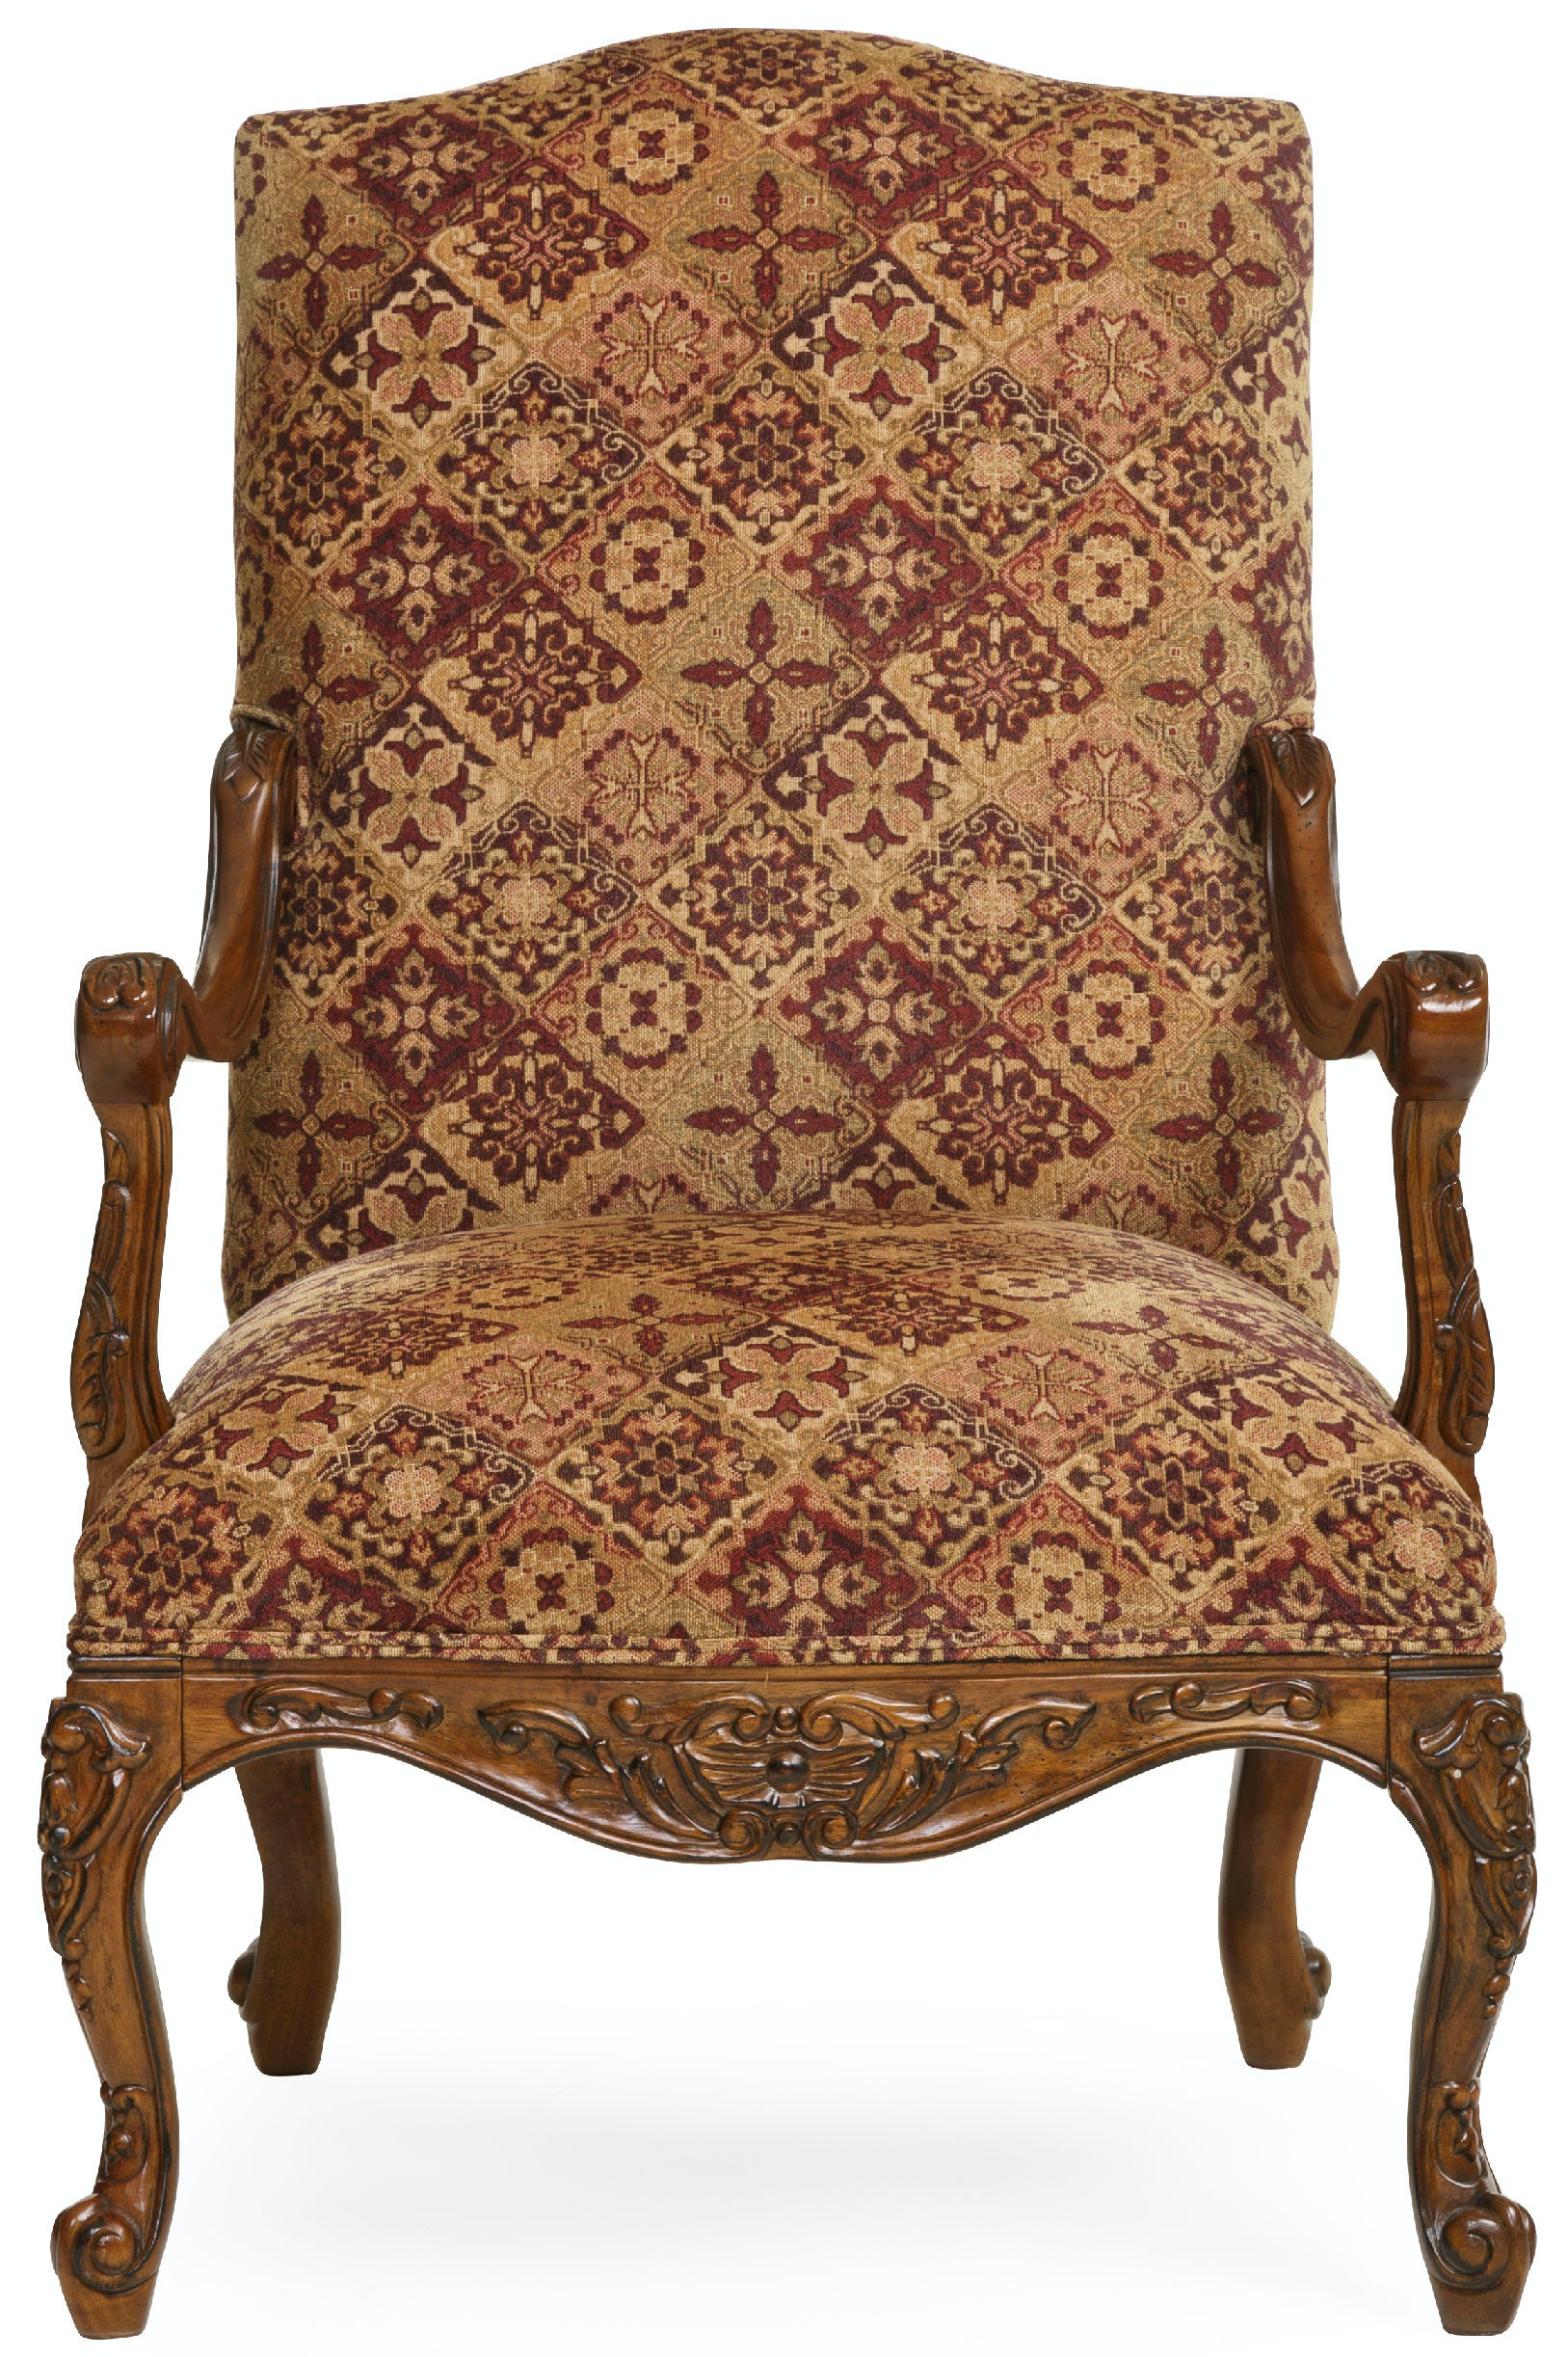 Great Amadore Accent Chair U2013 TAPESTRY ST:381430